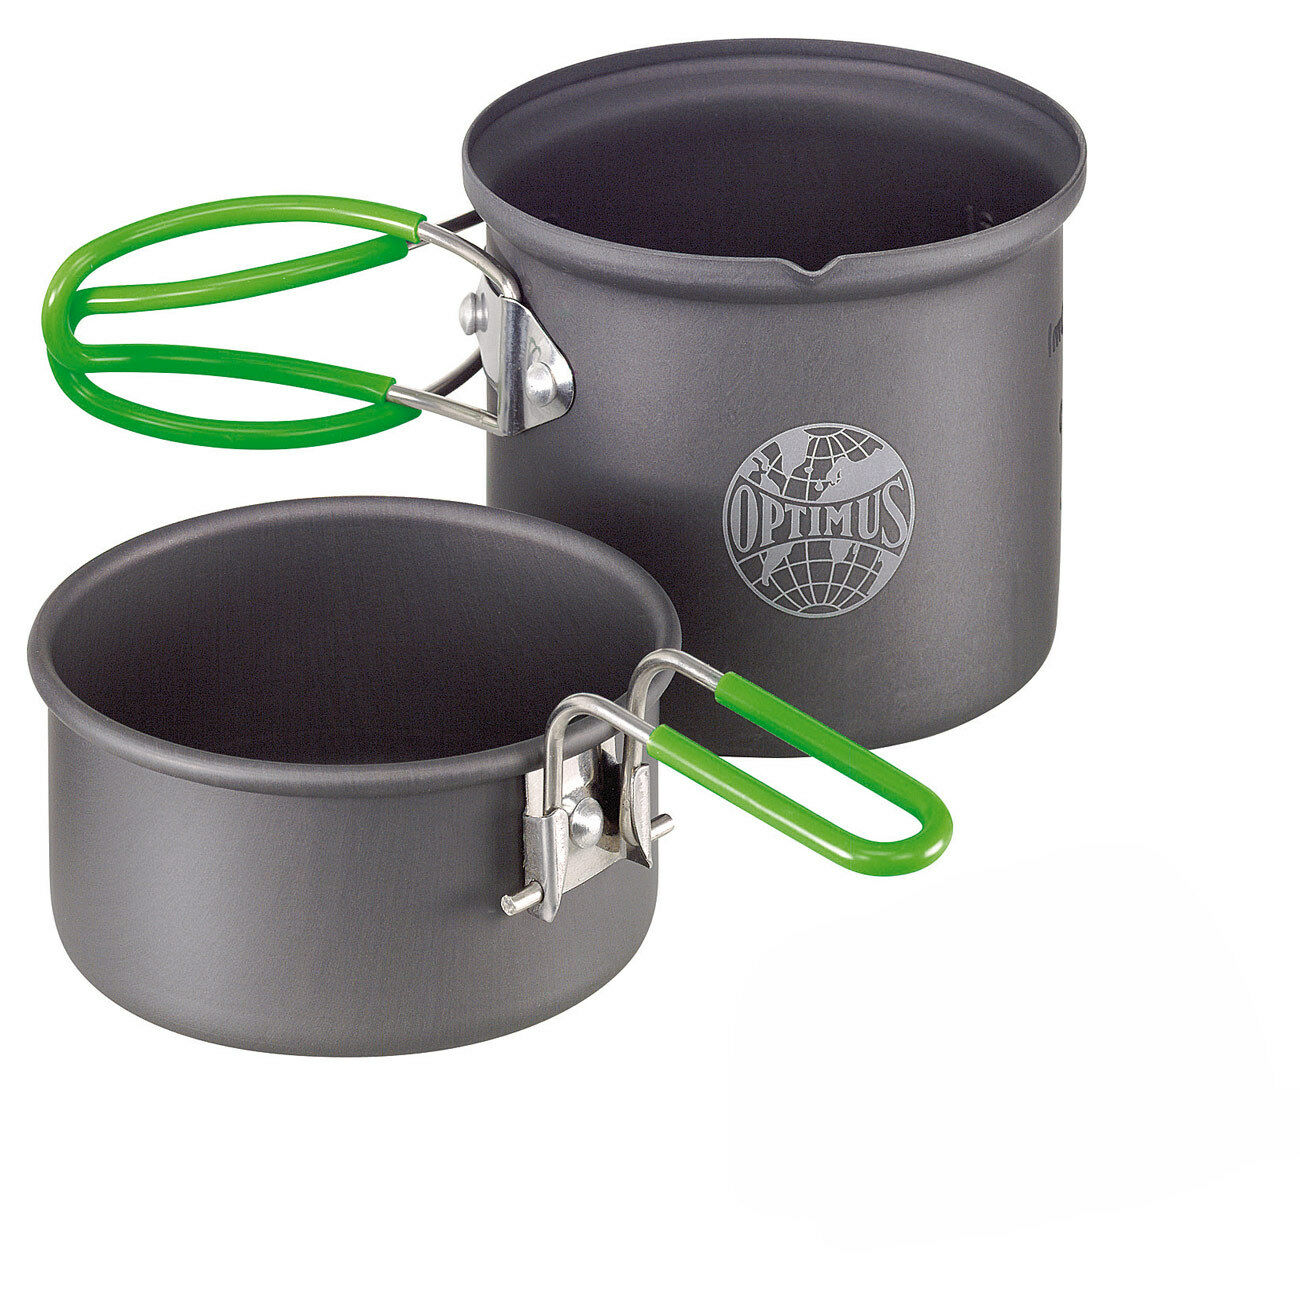 Optimus Cooker Terra Solo Cooking Set, 0.6 L Pan Pot Camping Outdoor Dishes